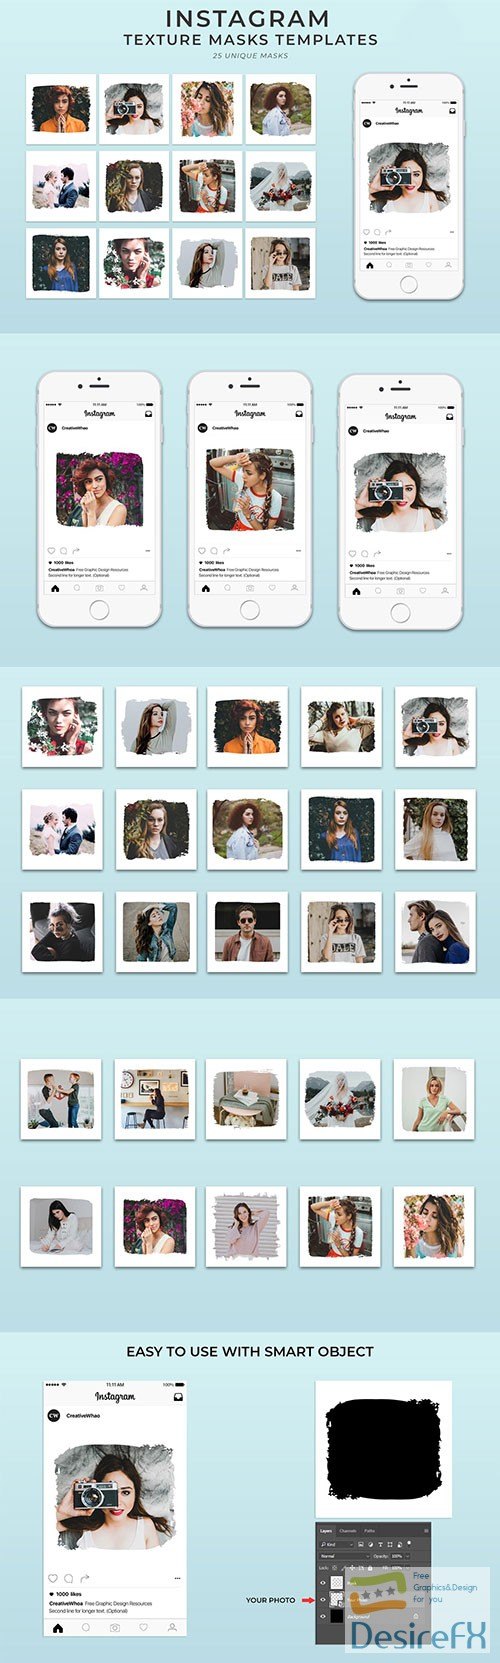 photoshop - 25 Textured Instagram Mask PSD Templates